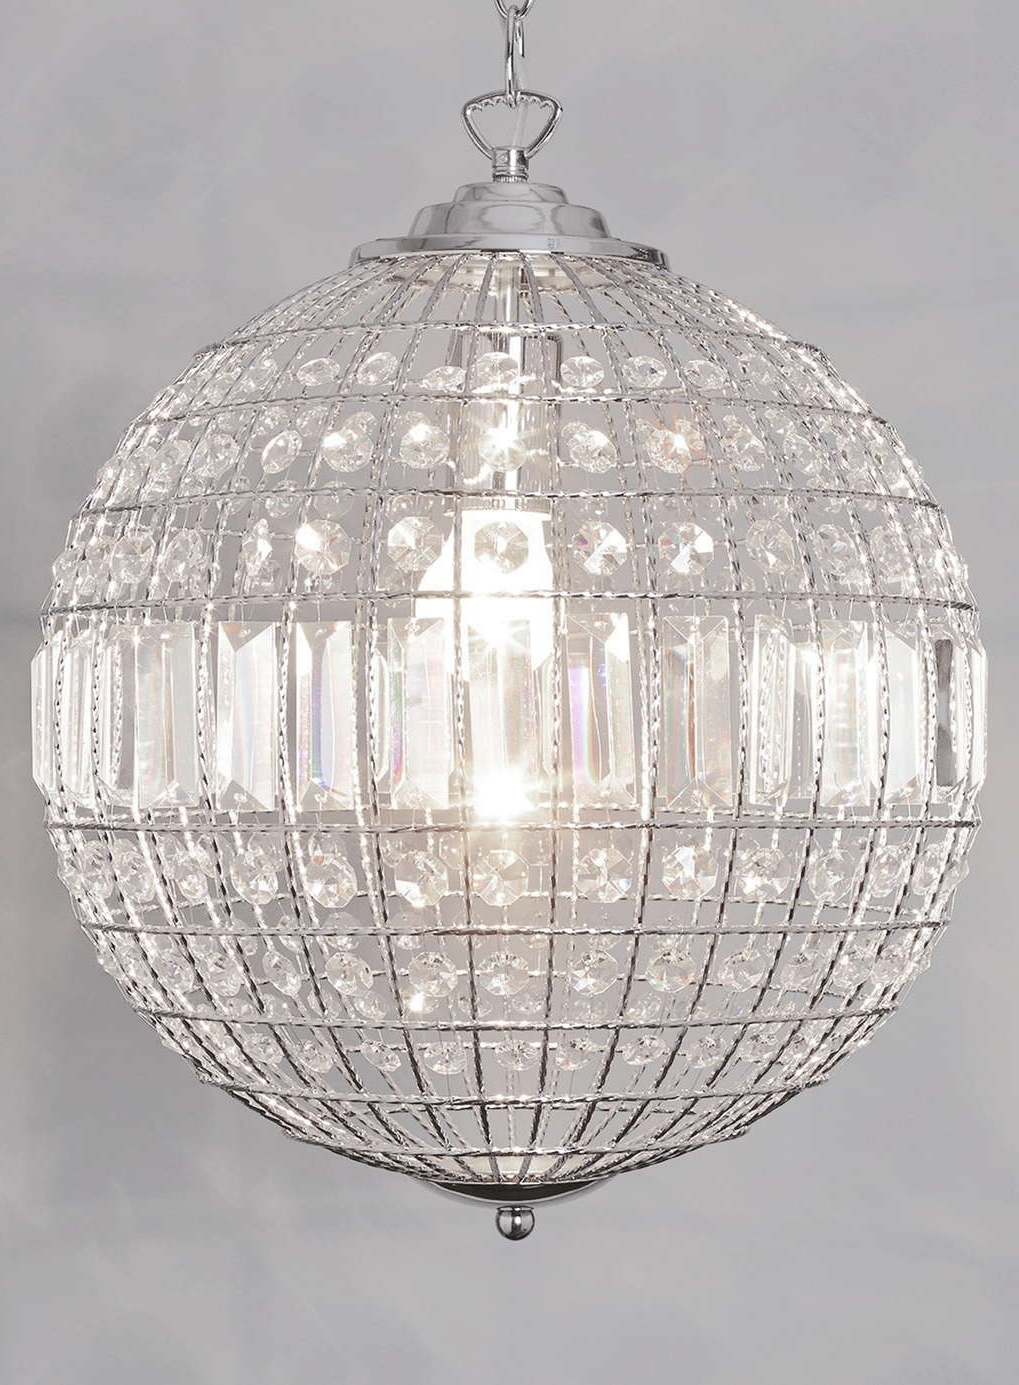 Medium Round Brass Crystal Chandelier With Banded Leaf Decoration Throughout Most Up To Date Globe Crystal Chandelier (View 15 of 20)